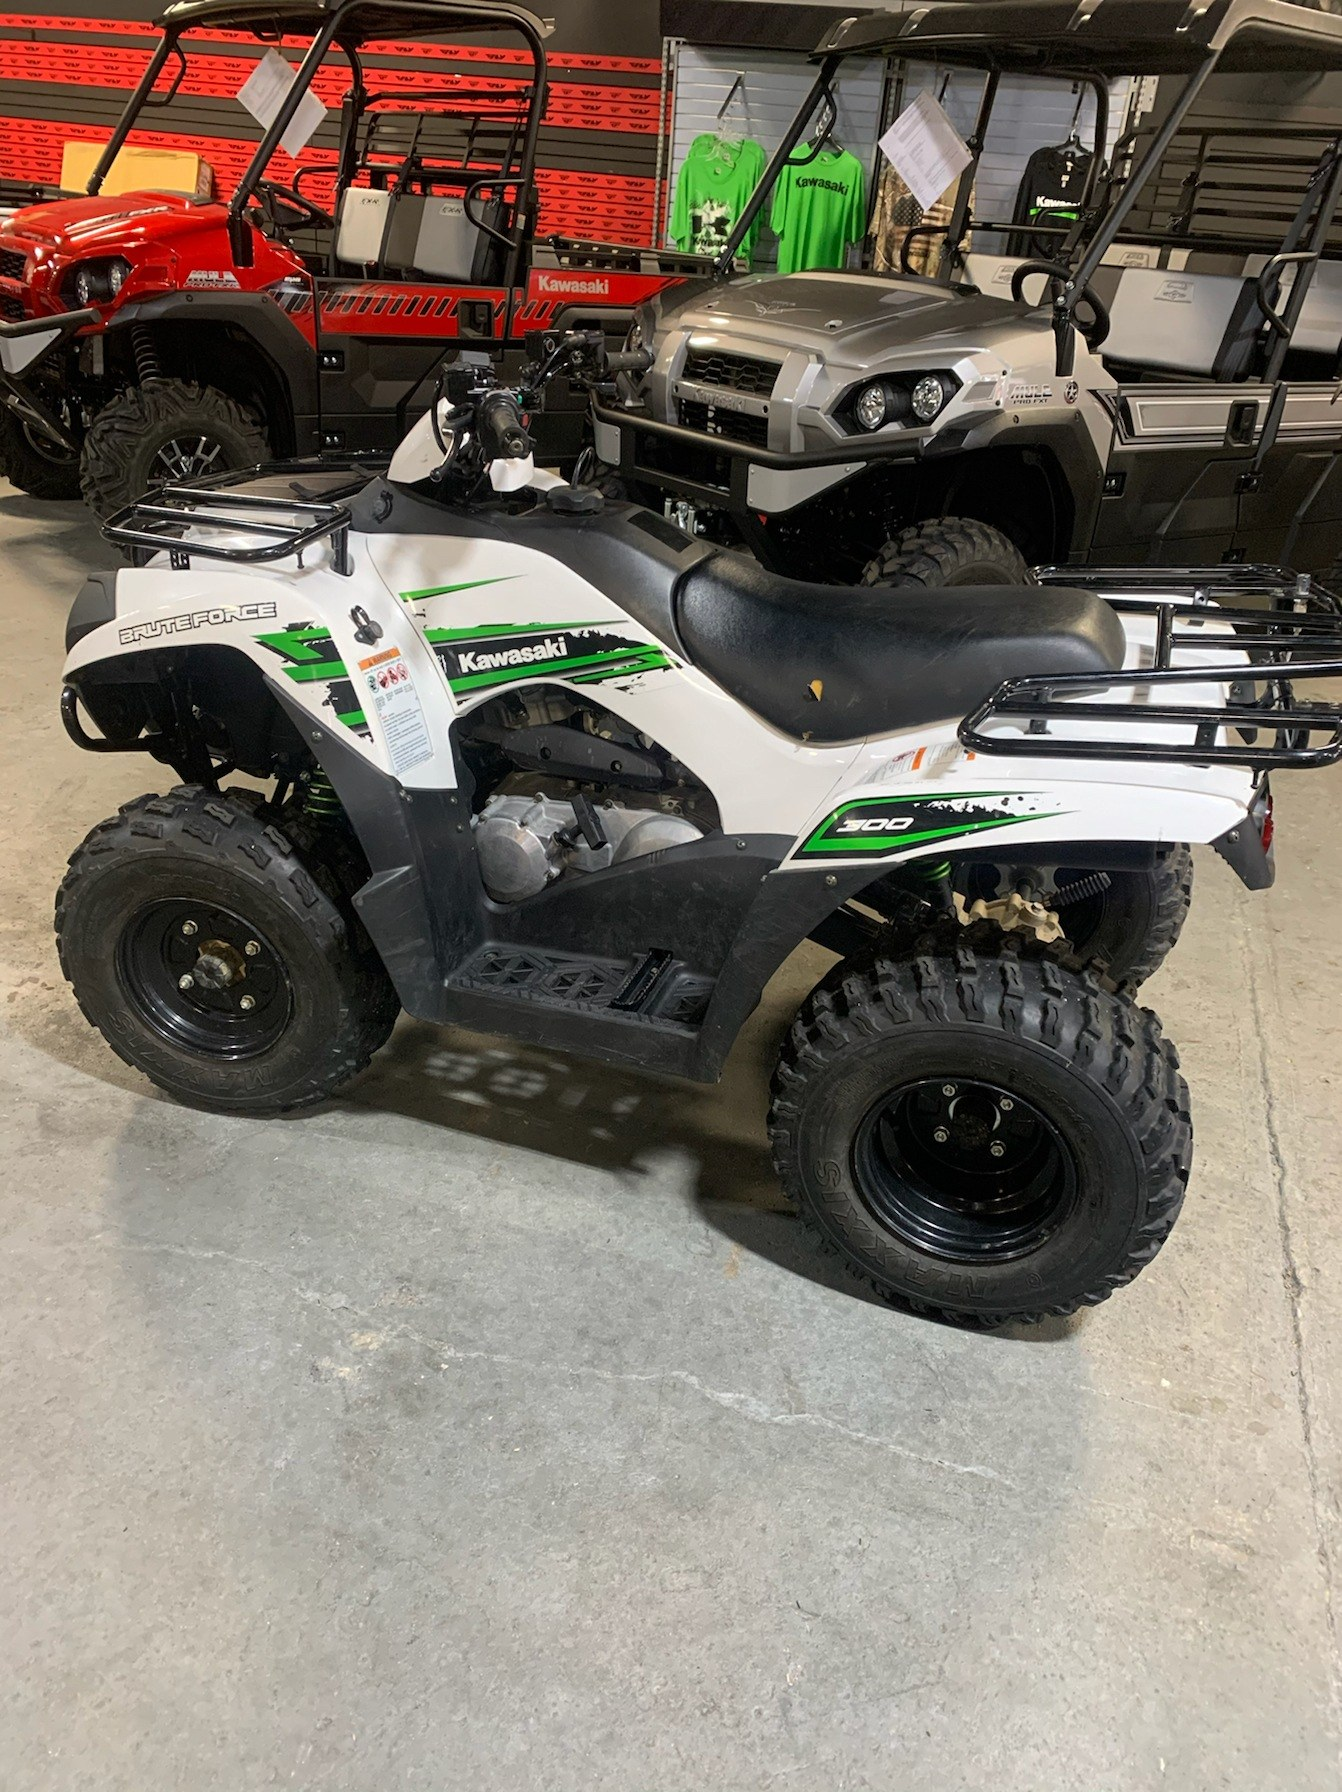 2018 Kawasaki BRUTE FORCE 300 in Kingsport, Tennessee - Photo 1